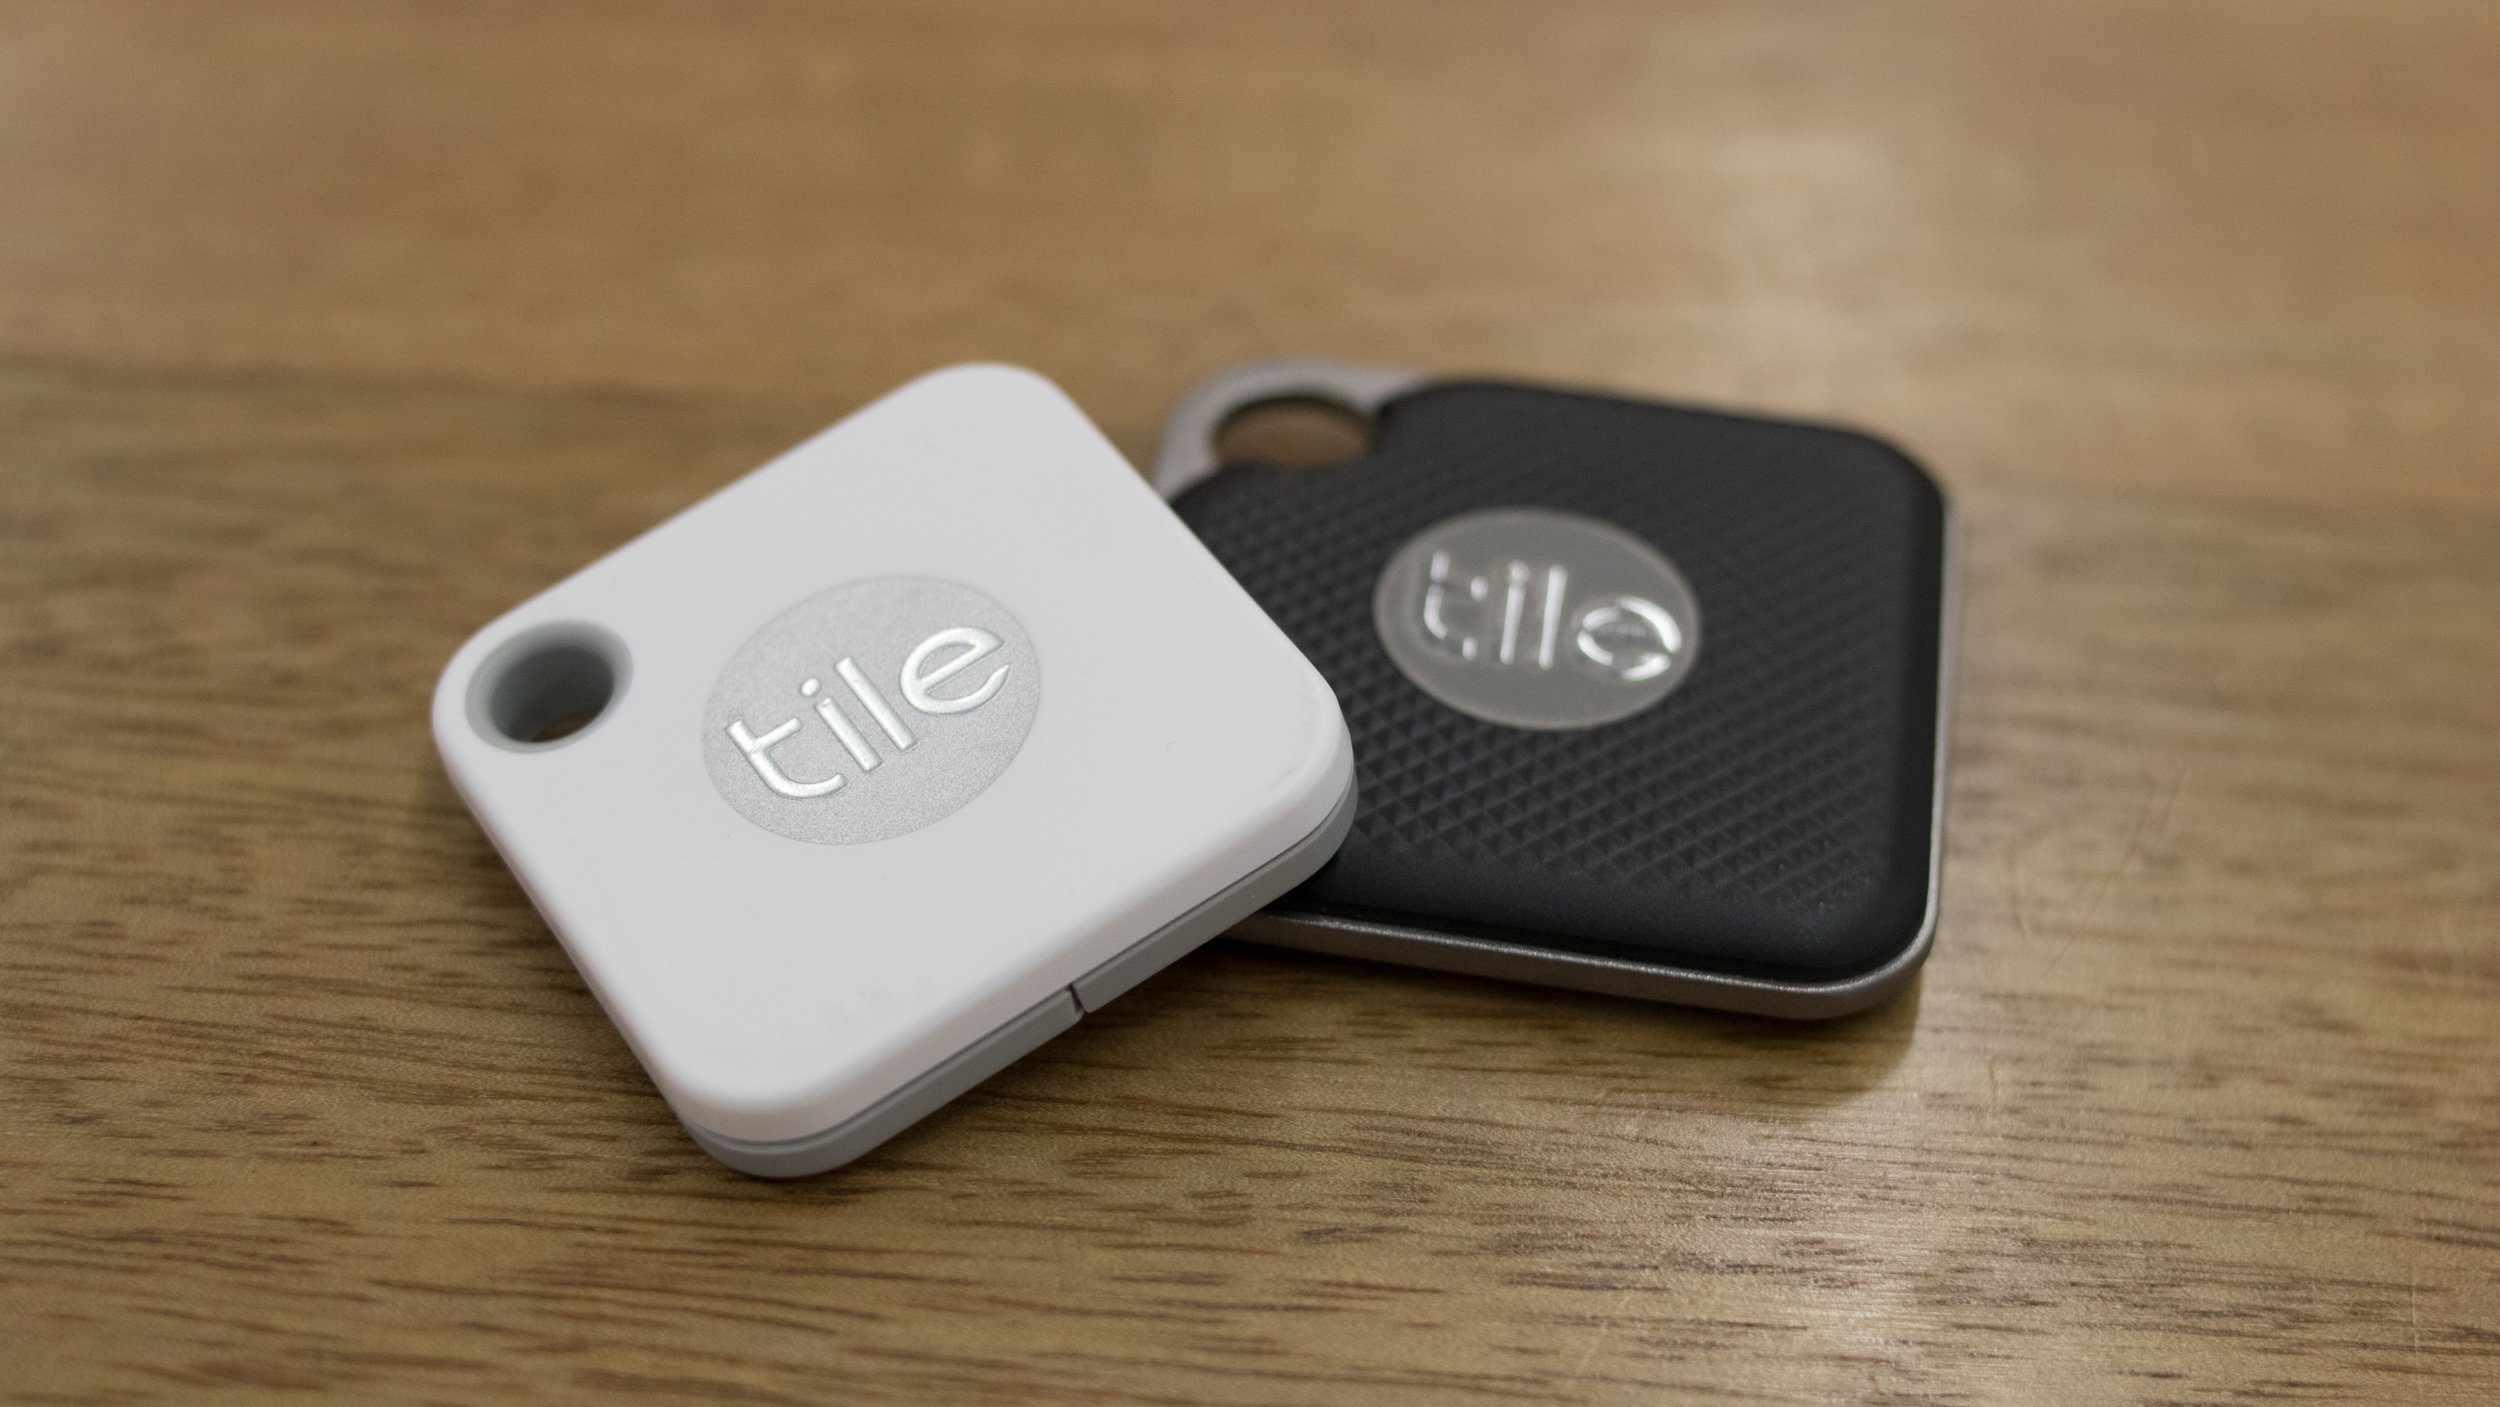 Tile Mate And Tile Pro 2018 Review Removable Battery Is A